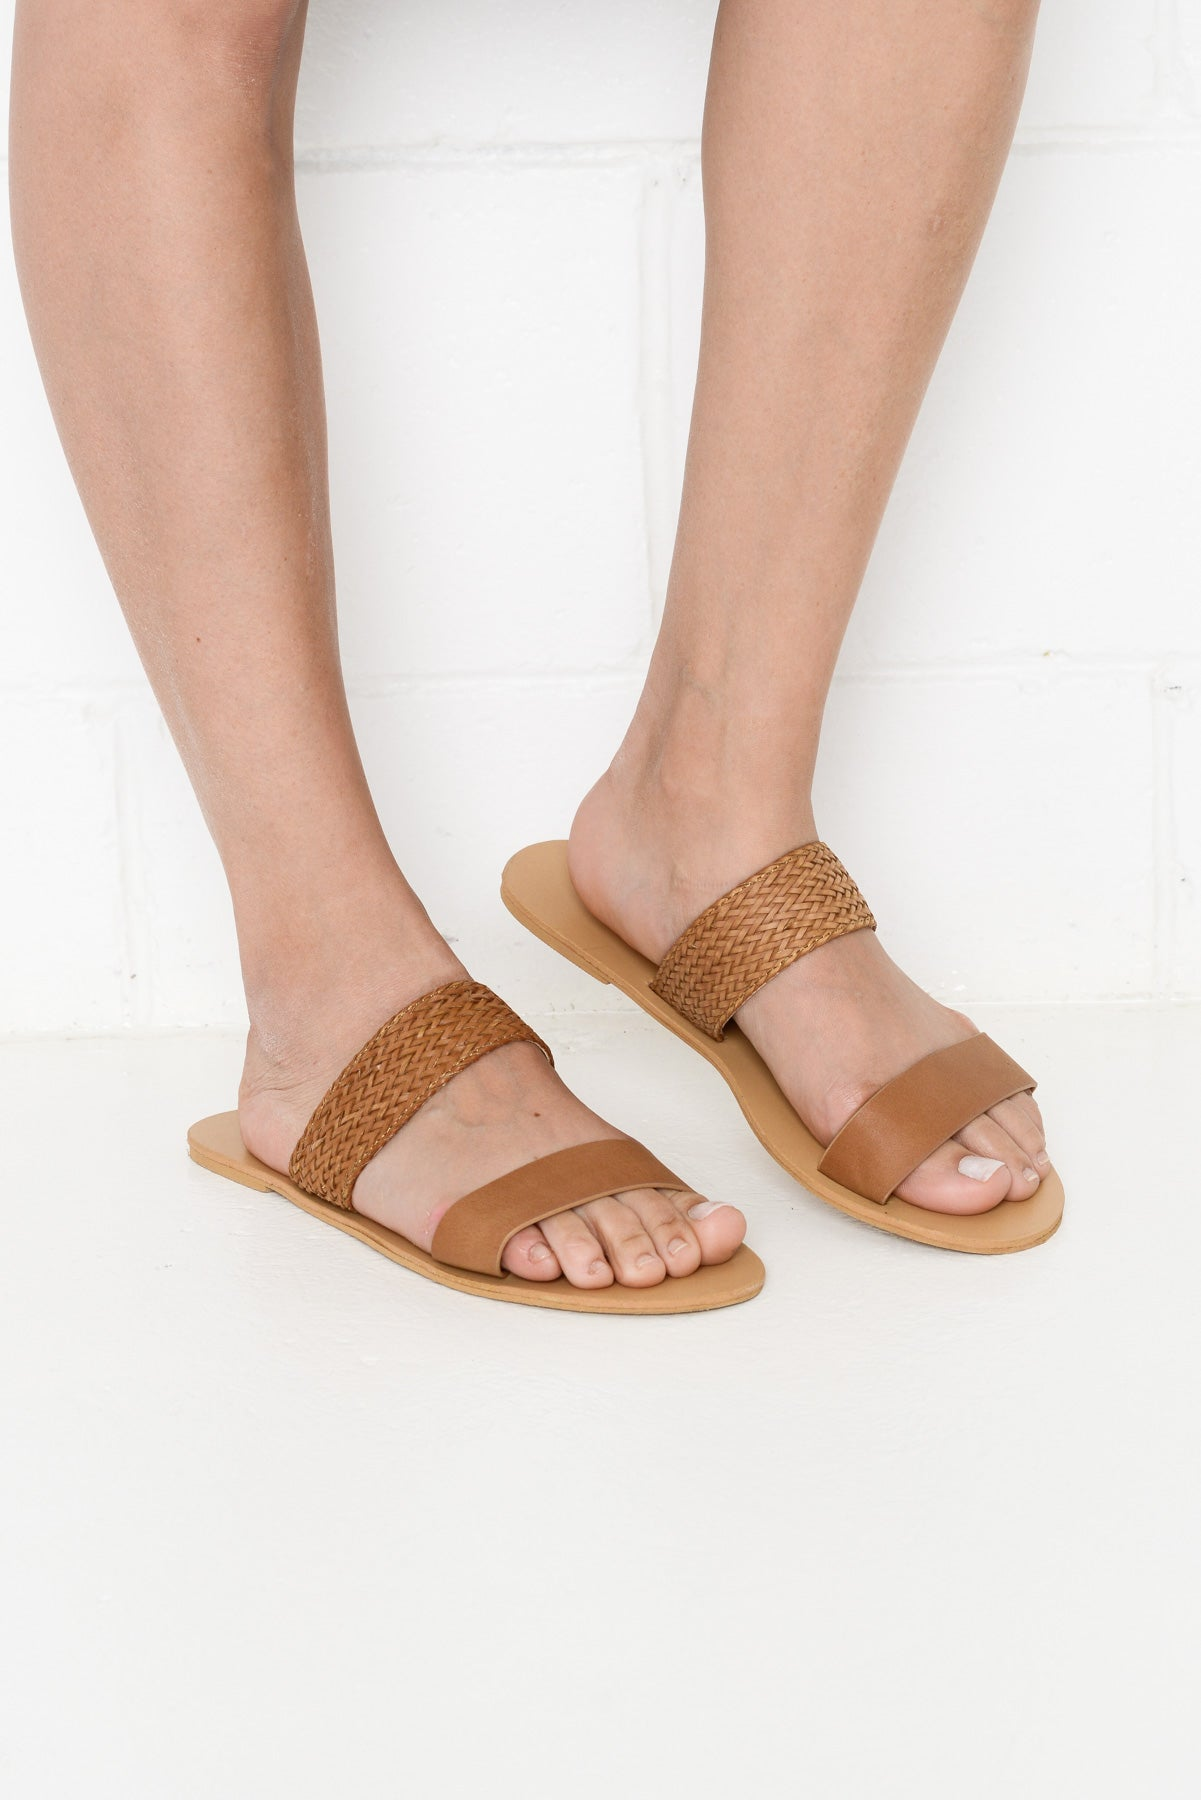 Antigua Tan Woven Slides - Blue Bungalow